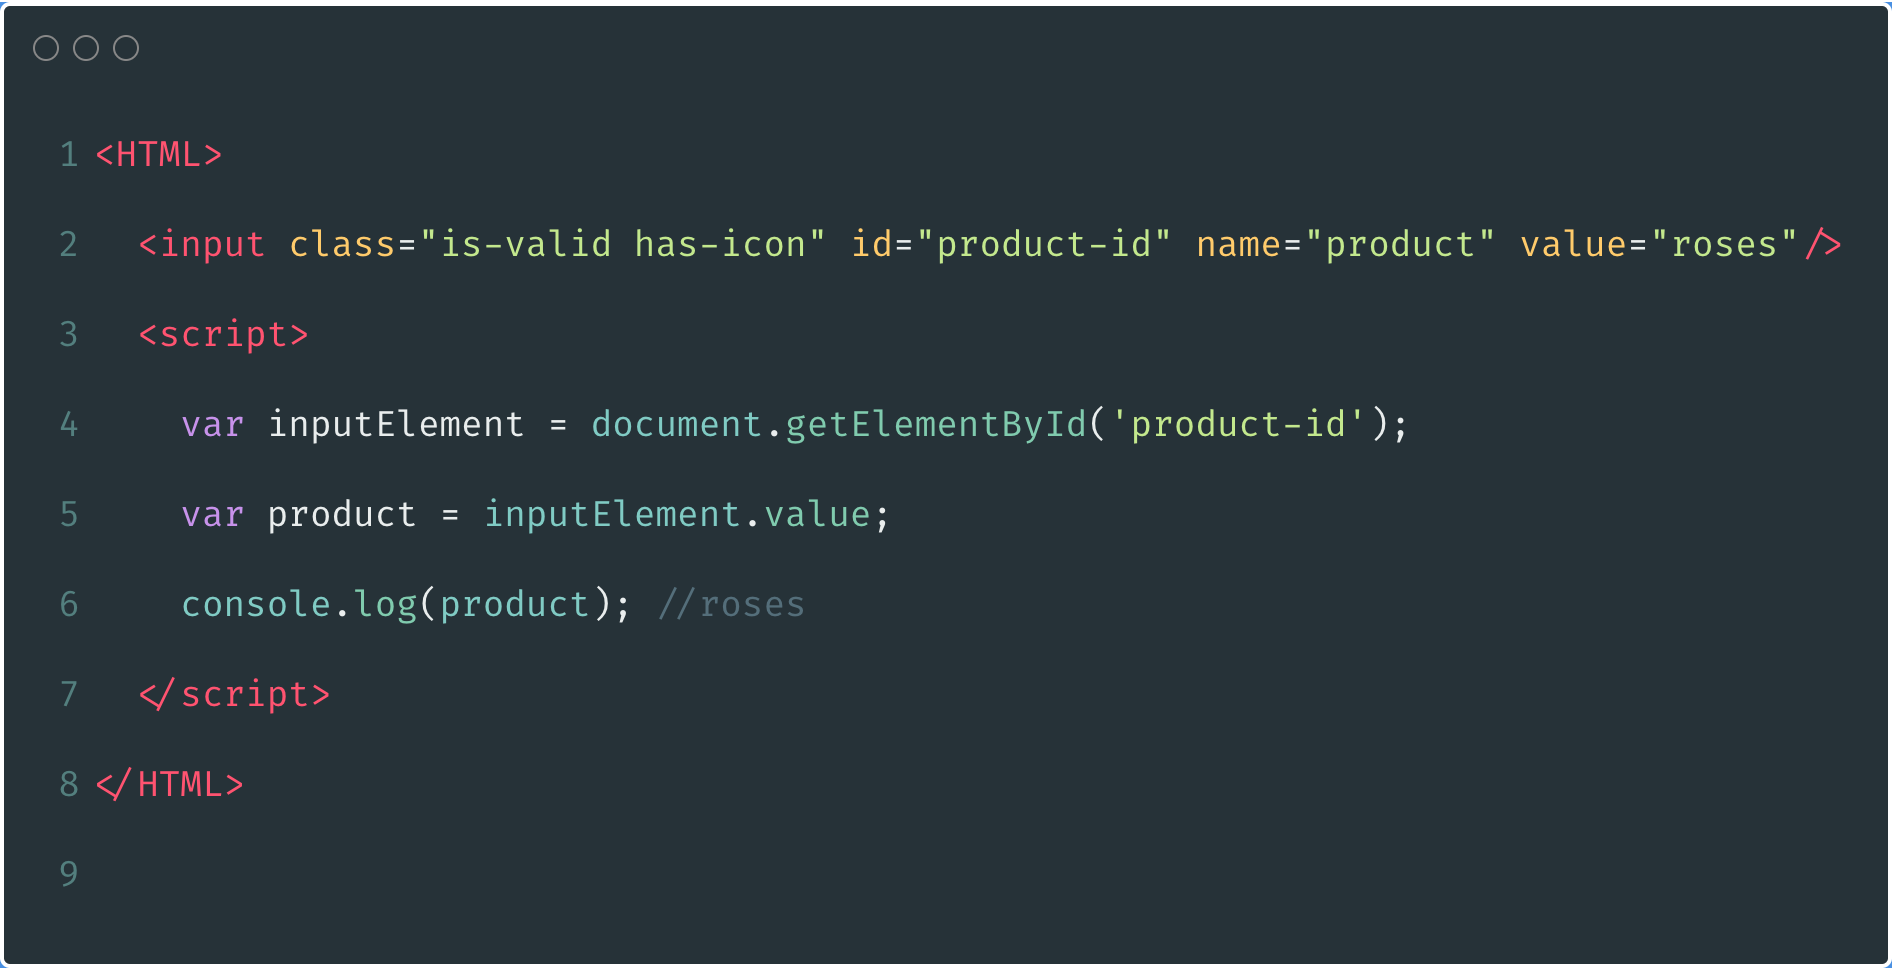 Using invalid variable names as Ids